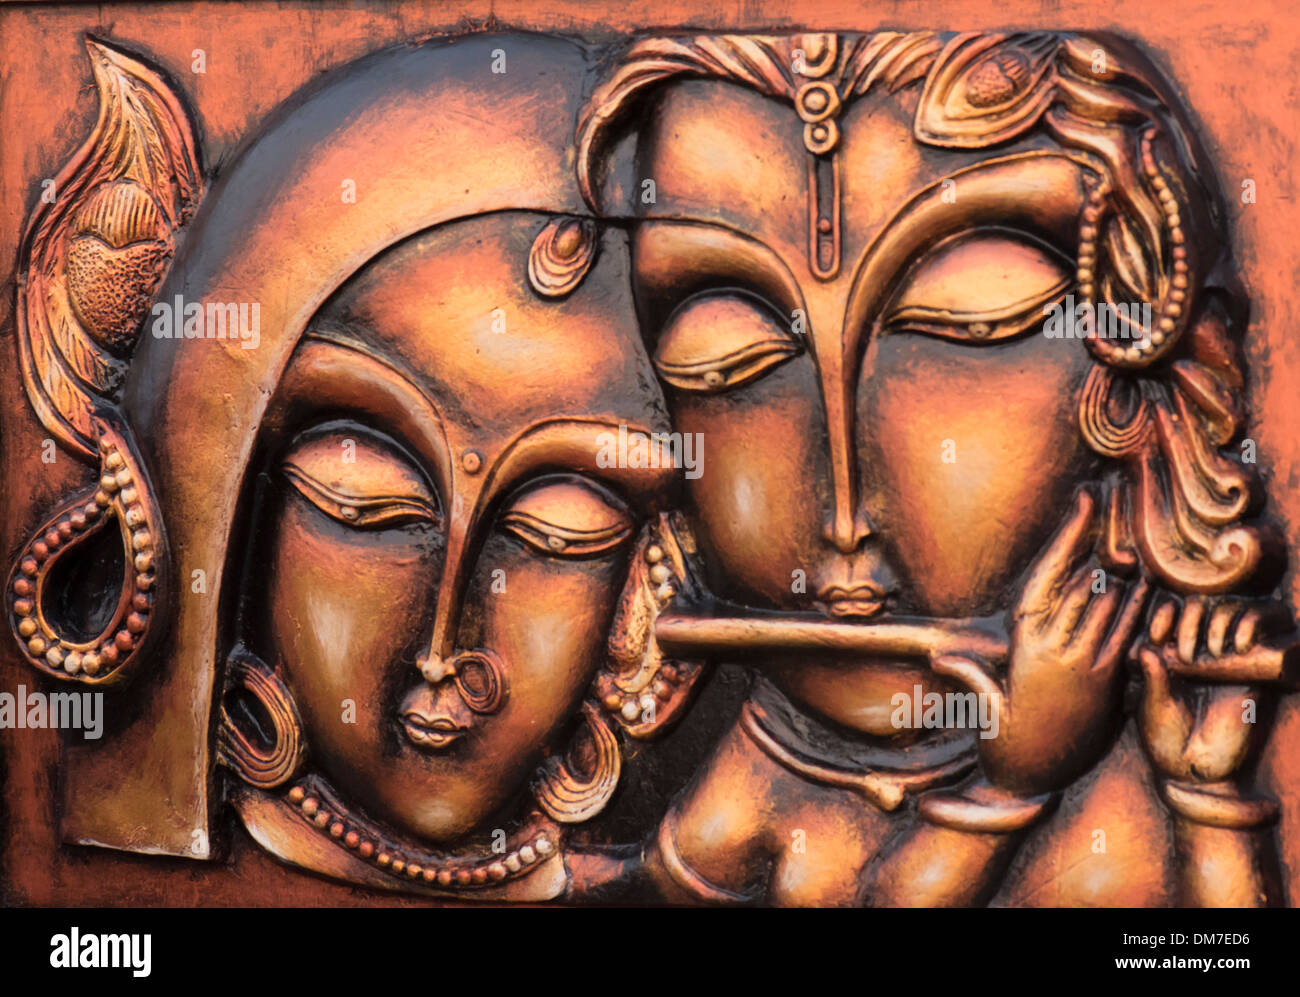 Terracotta image of Lord Krishna and Radha - his Consort. - Stock Image